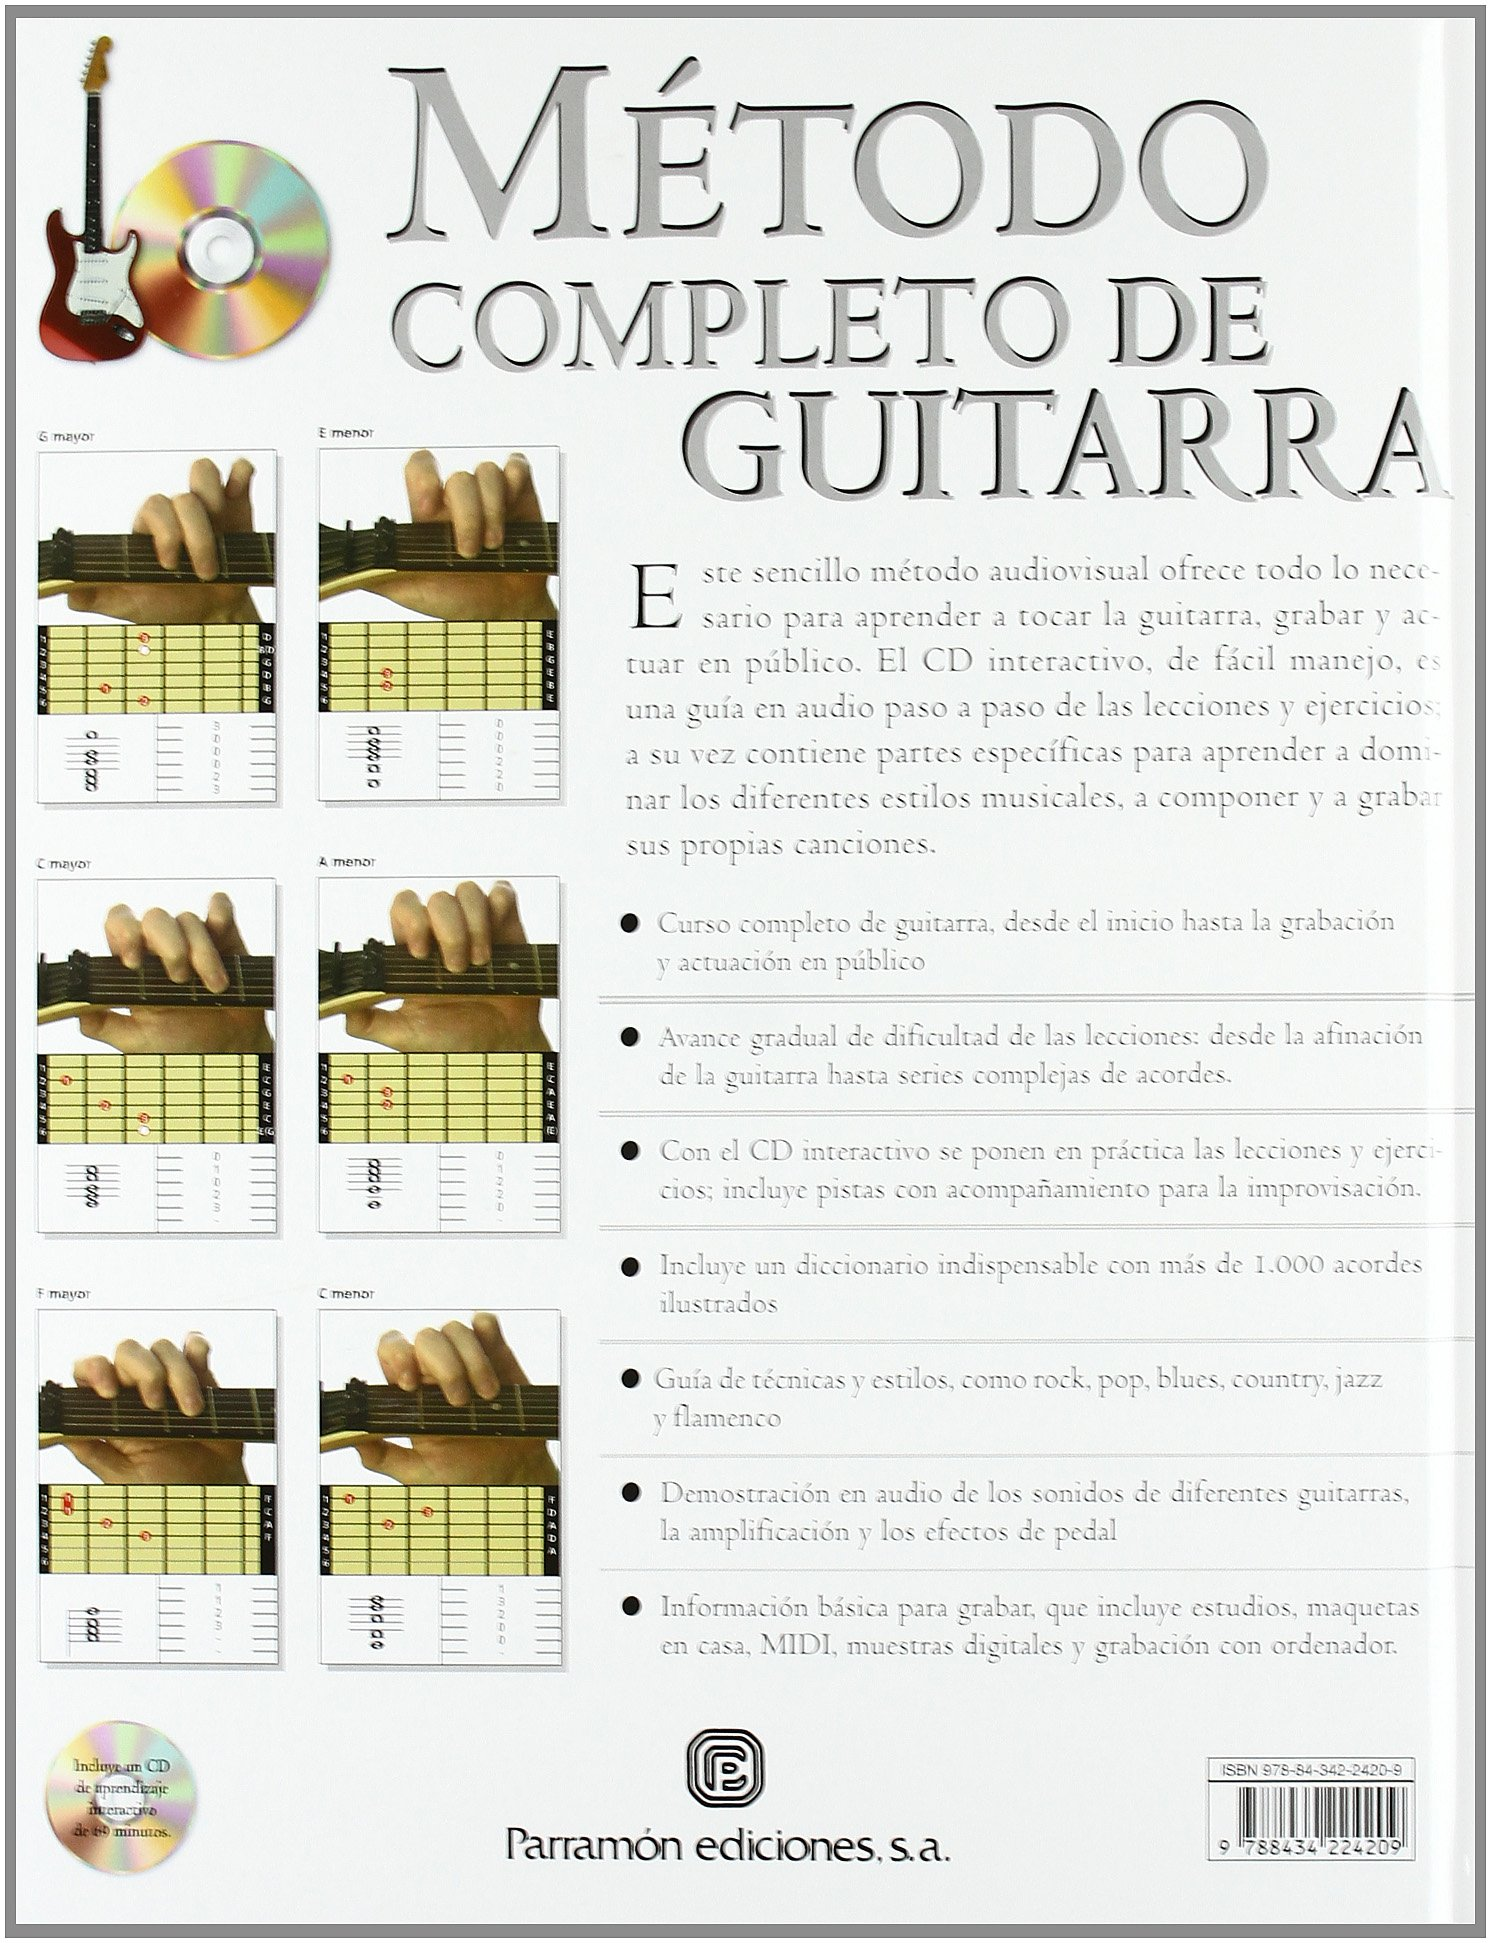 METODO COMPLETO DE GUITARRA (Spanish Edition): Terry Borrows: 9788434224209: Amazon.com: Books